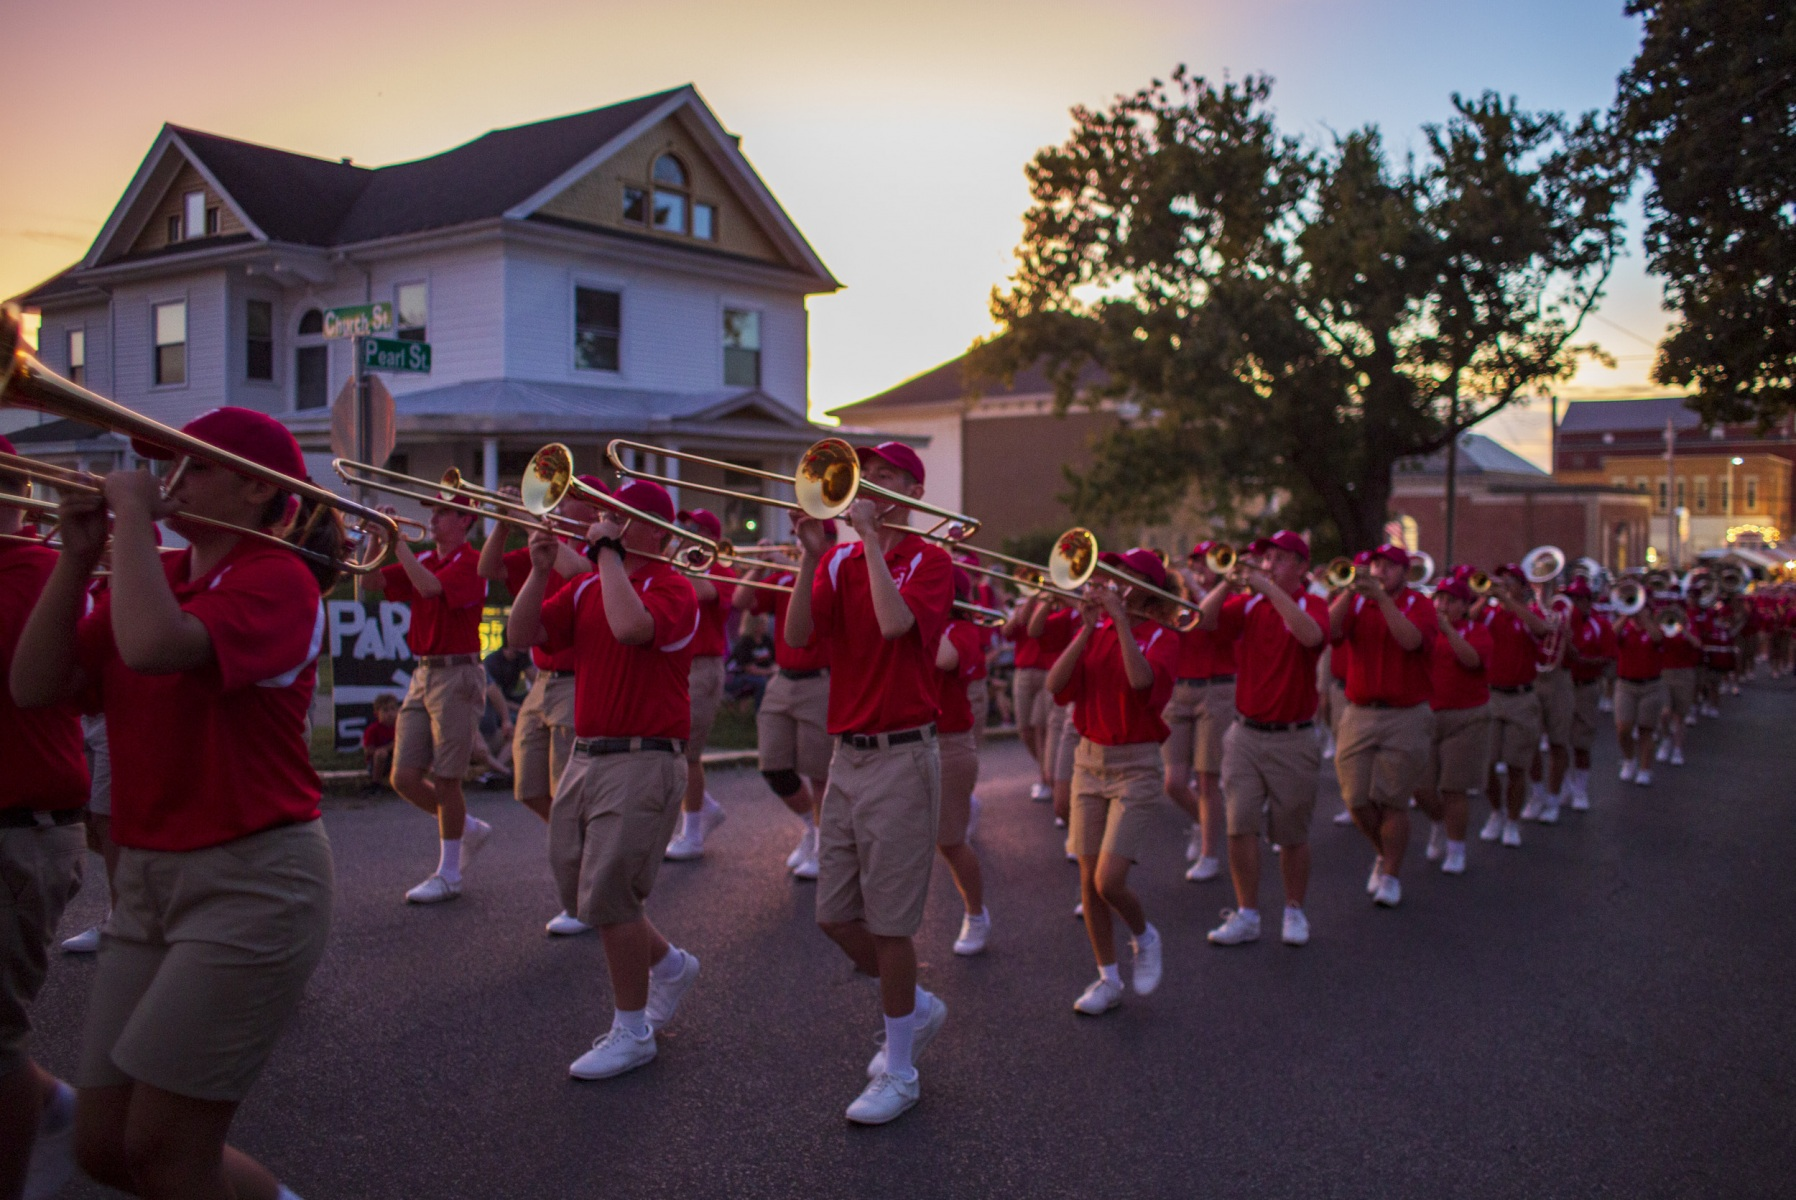 Jackson High School band performs during the parade at the Jackson Apple Festival in Jackson, Ohio, on Wednesday, September 18, 2019.